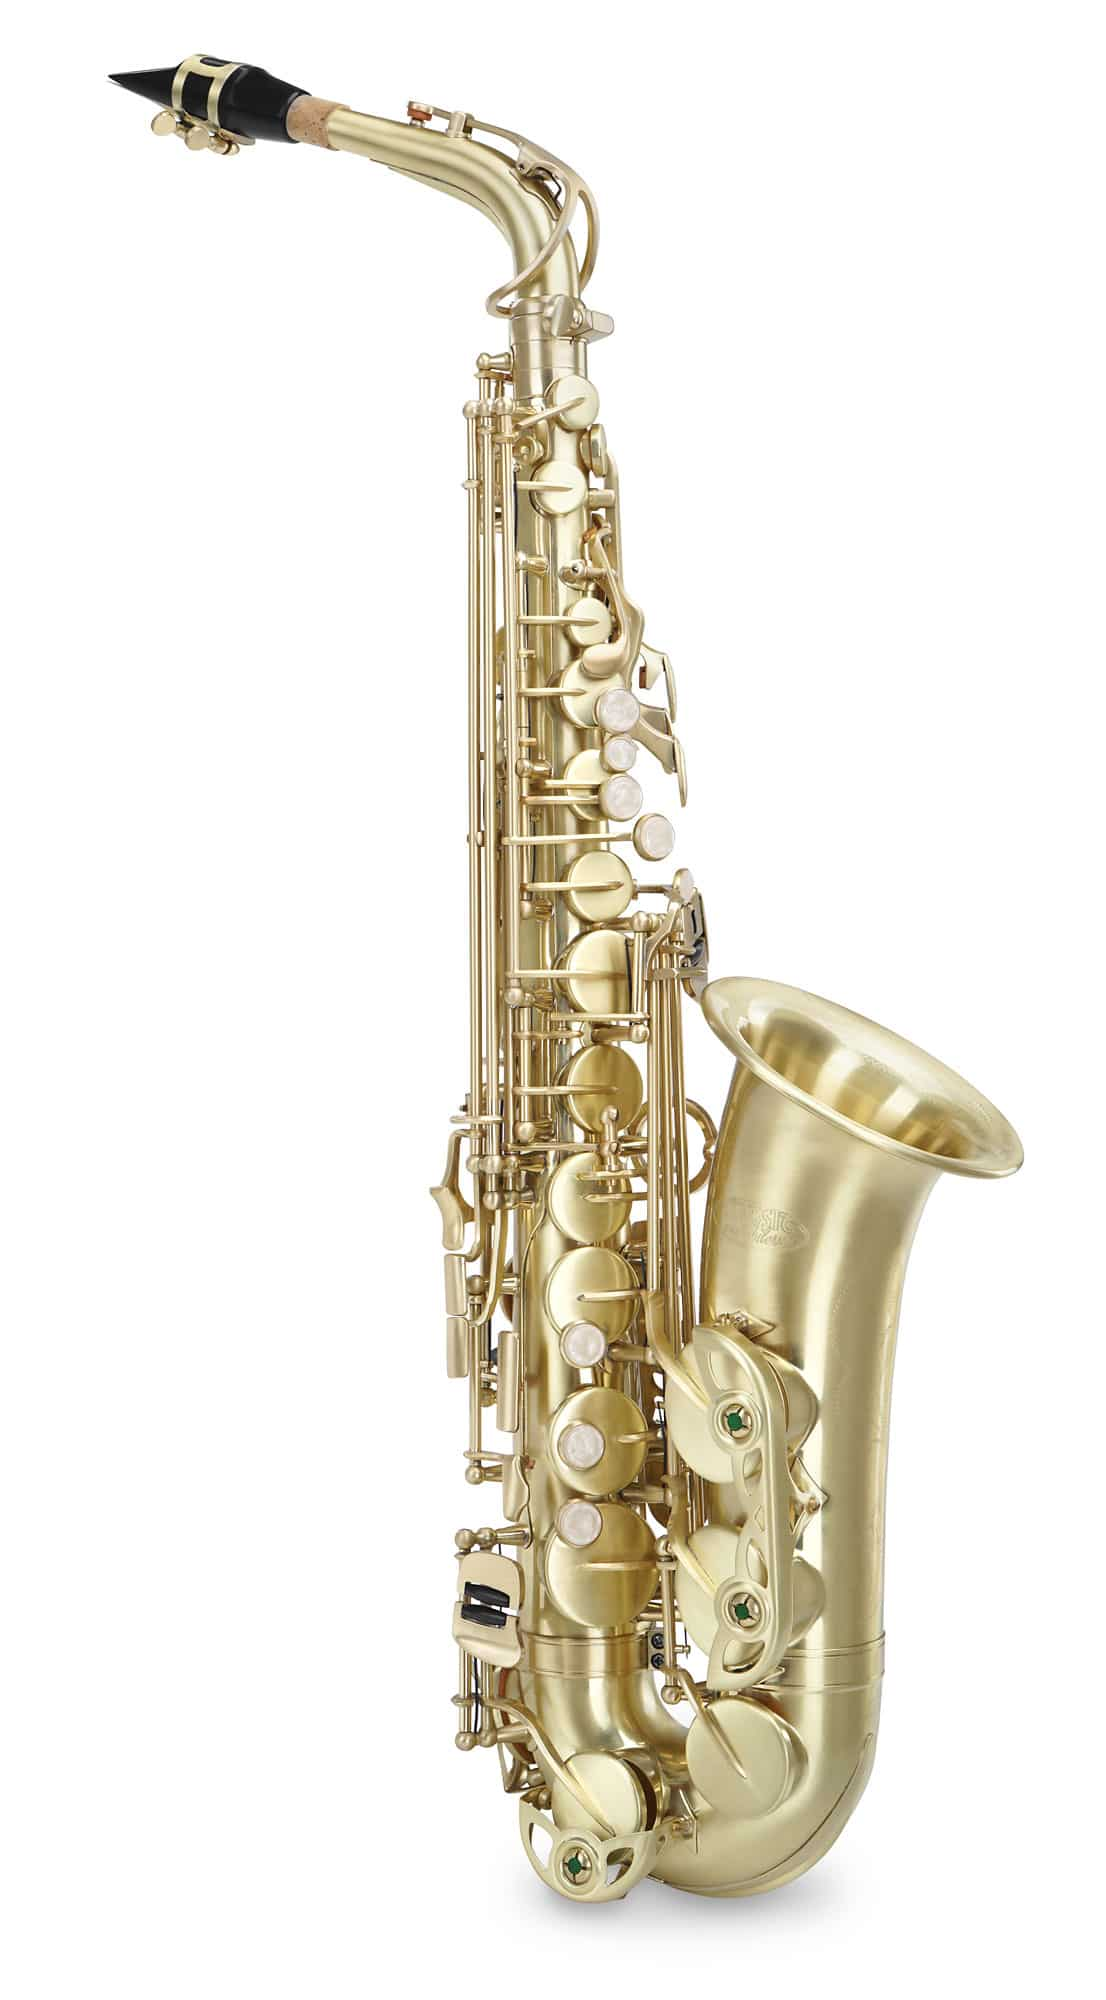 Saxophone - Classic Cantabile Winds AS 450 Brushed Altsaxophon - Onlineshop Musikhaus Kirstein